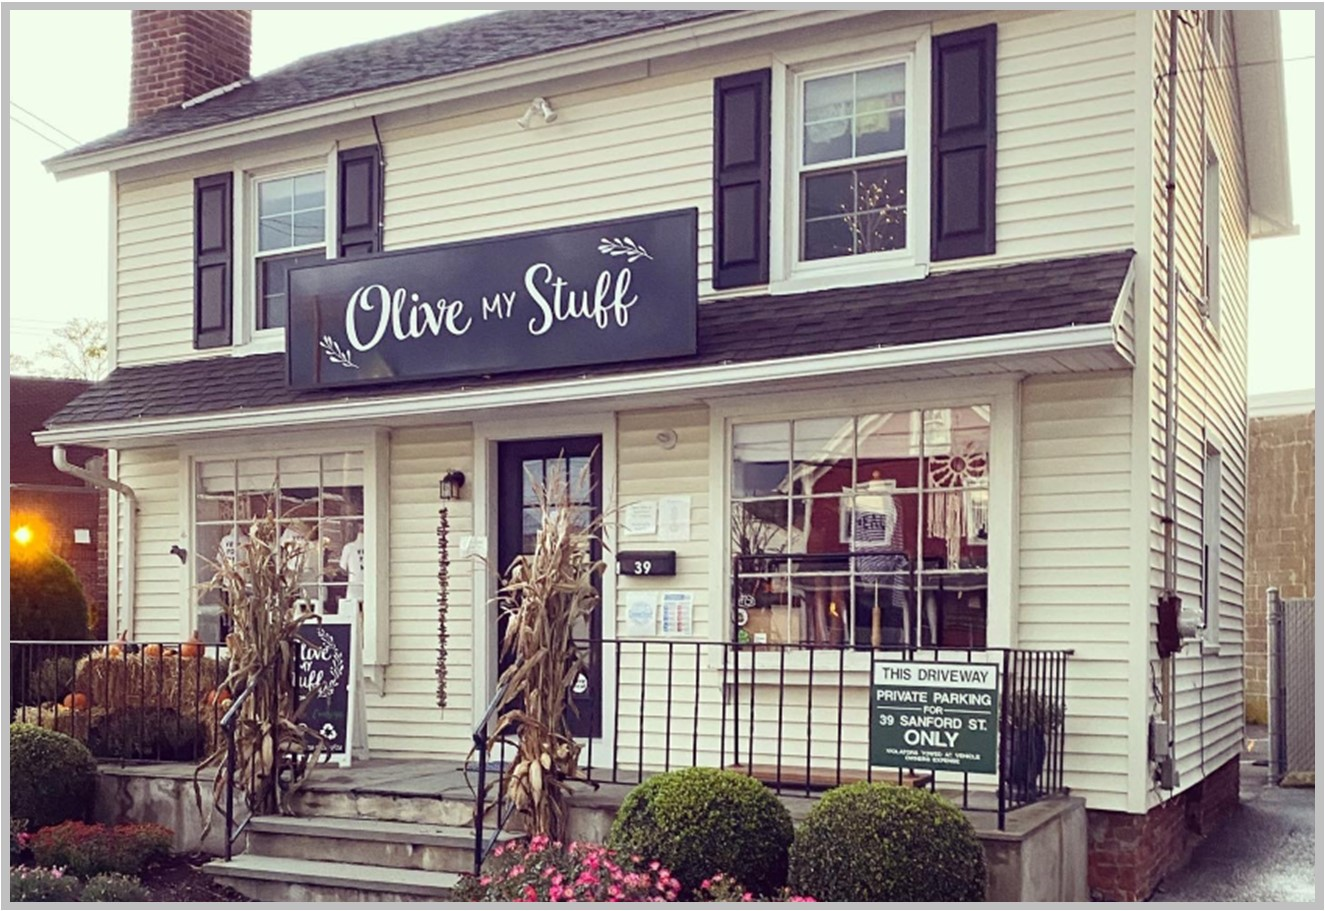 Olive My Stuff Coupon